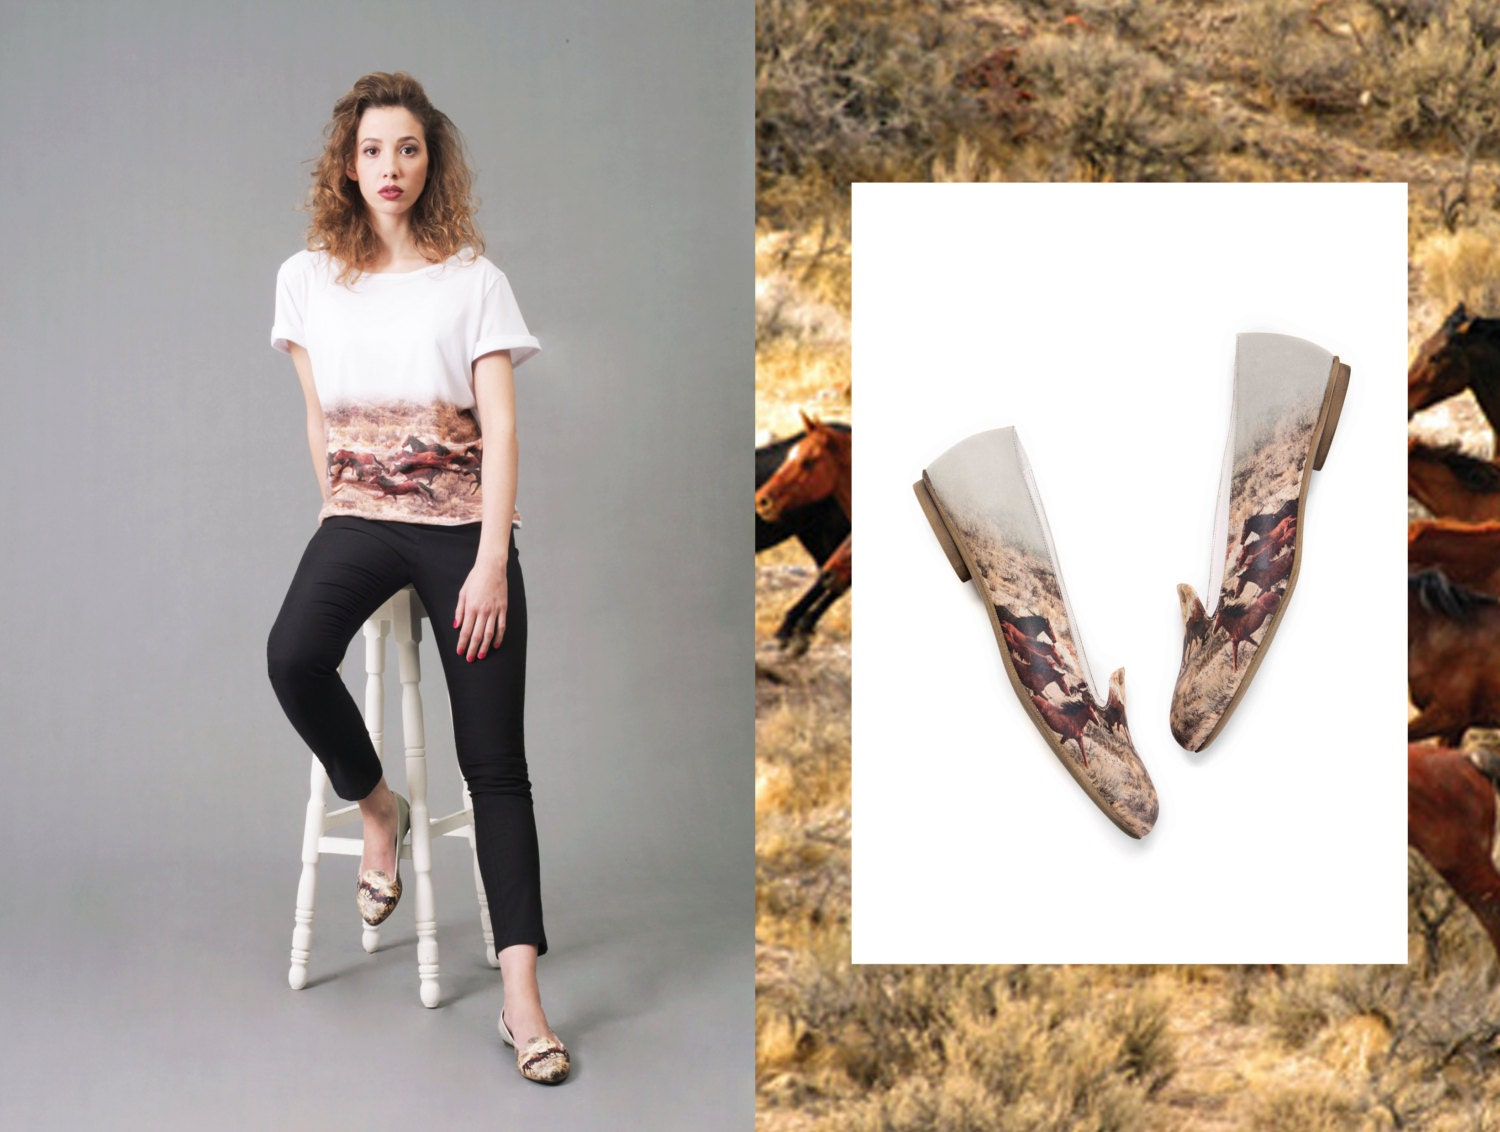 Limited Edition Slipper with Wild Horses Print & Matching Tee